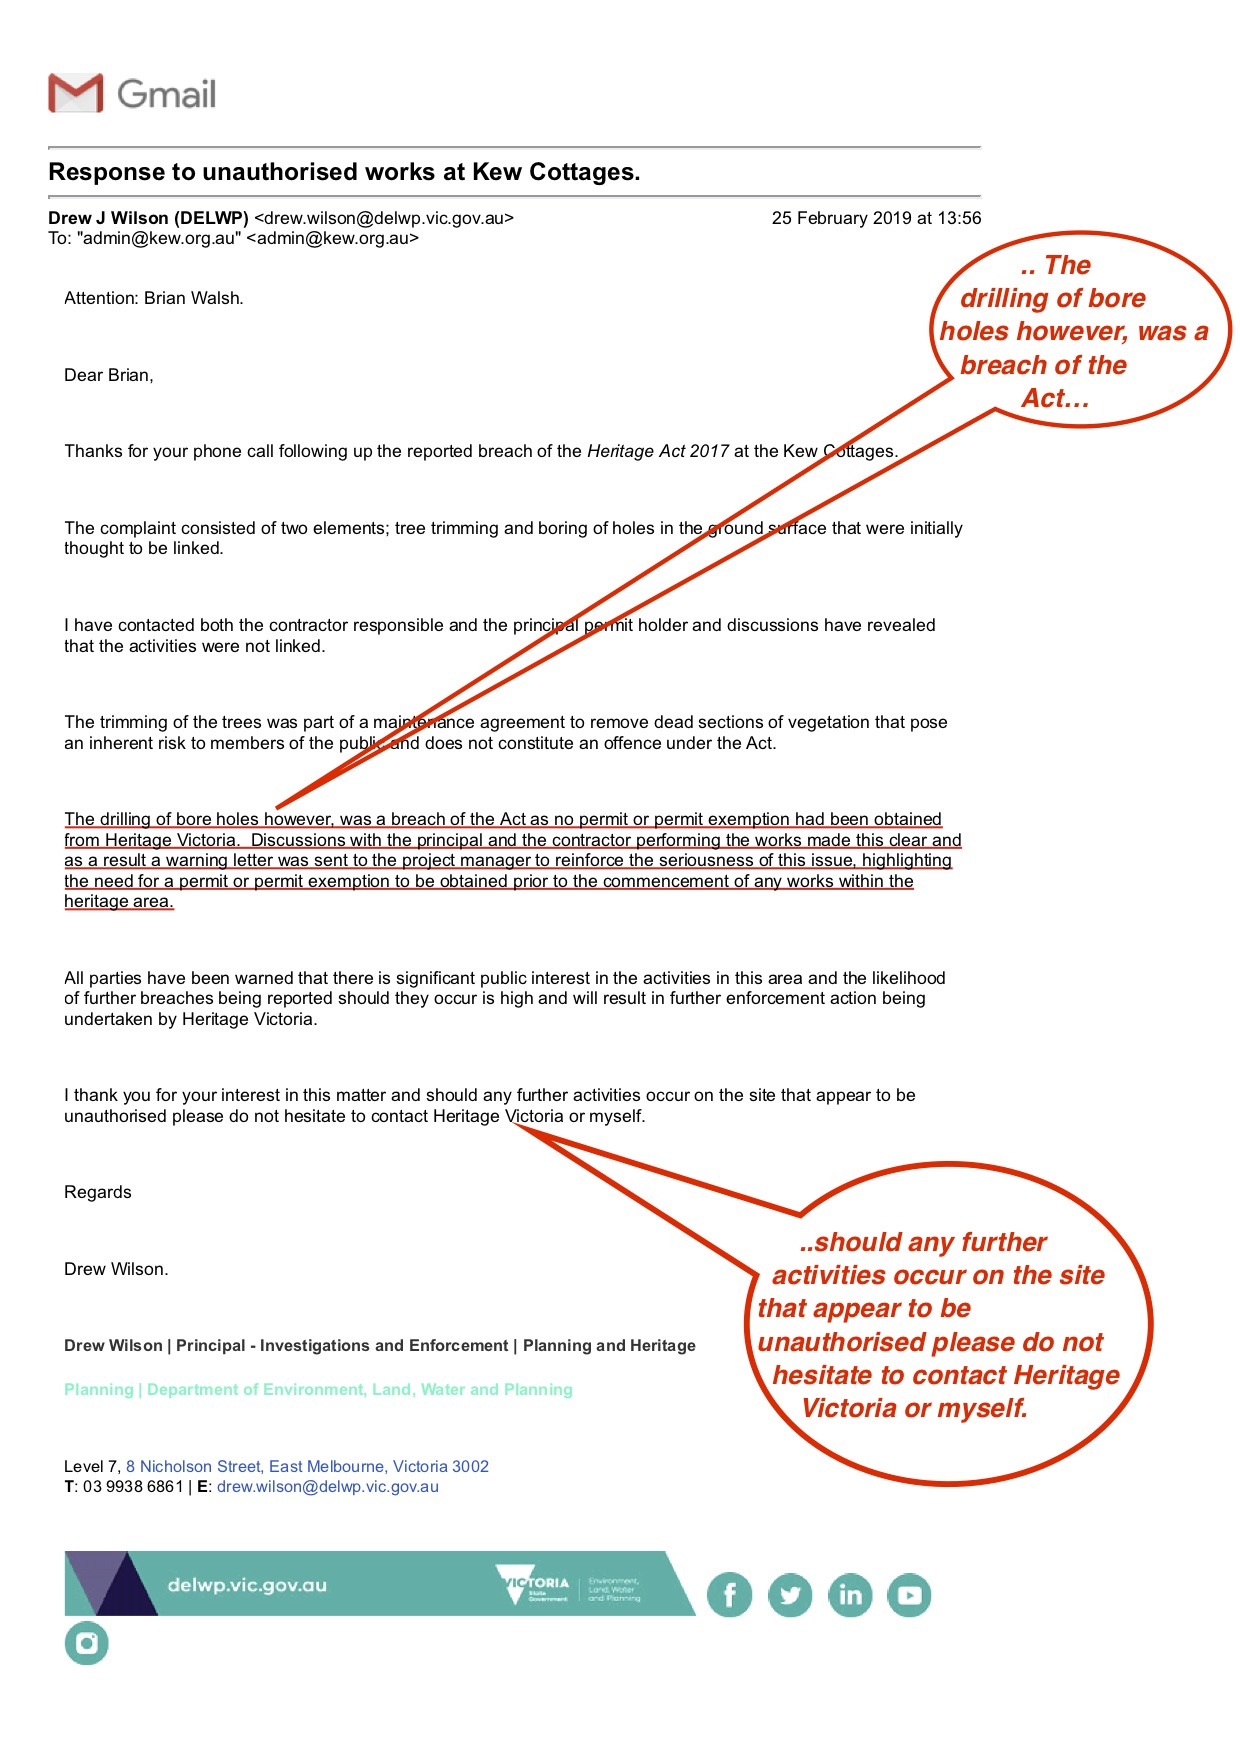 20190225Gmail_HV2KCC_Response_to unauthorised_works_at_Kew_Cottages